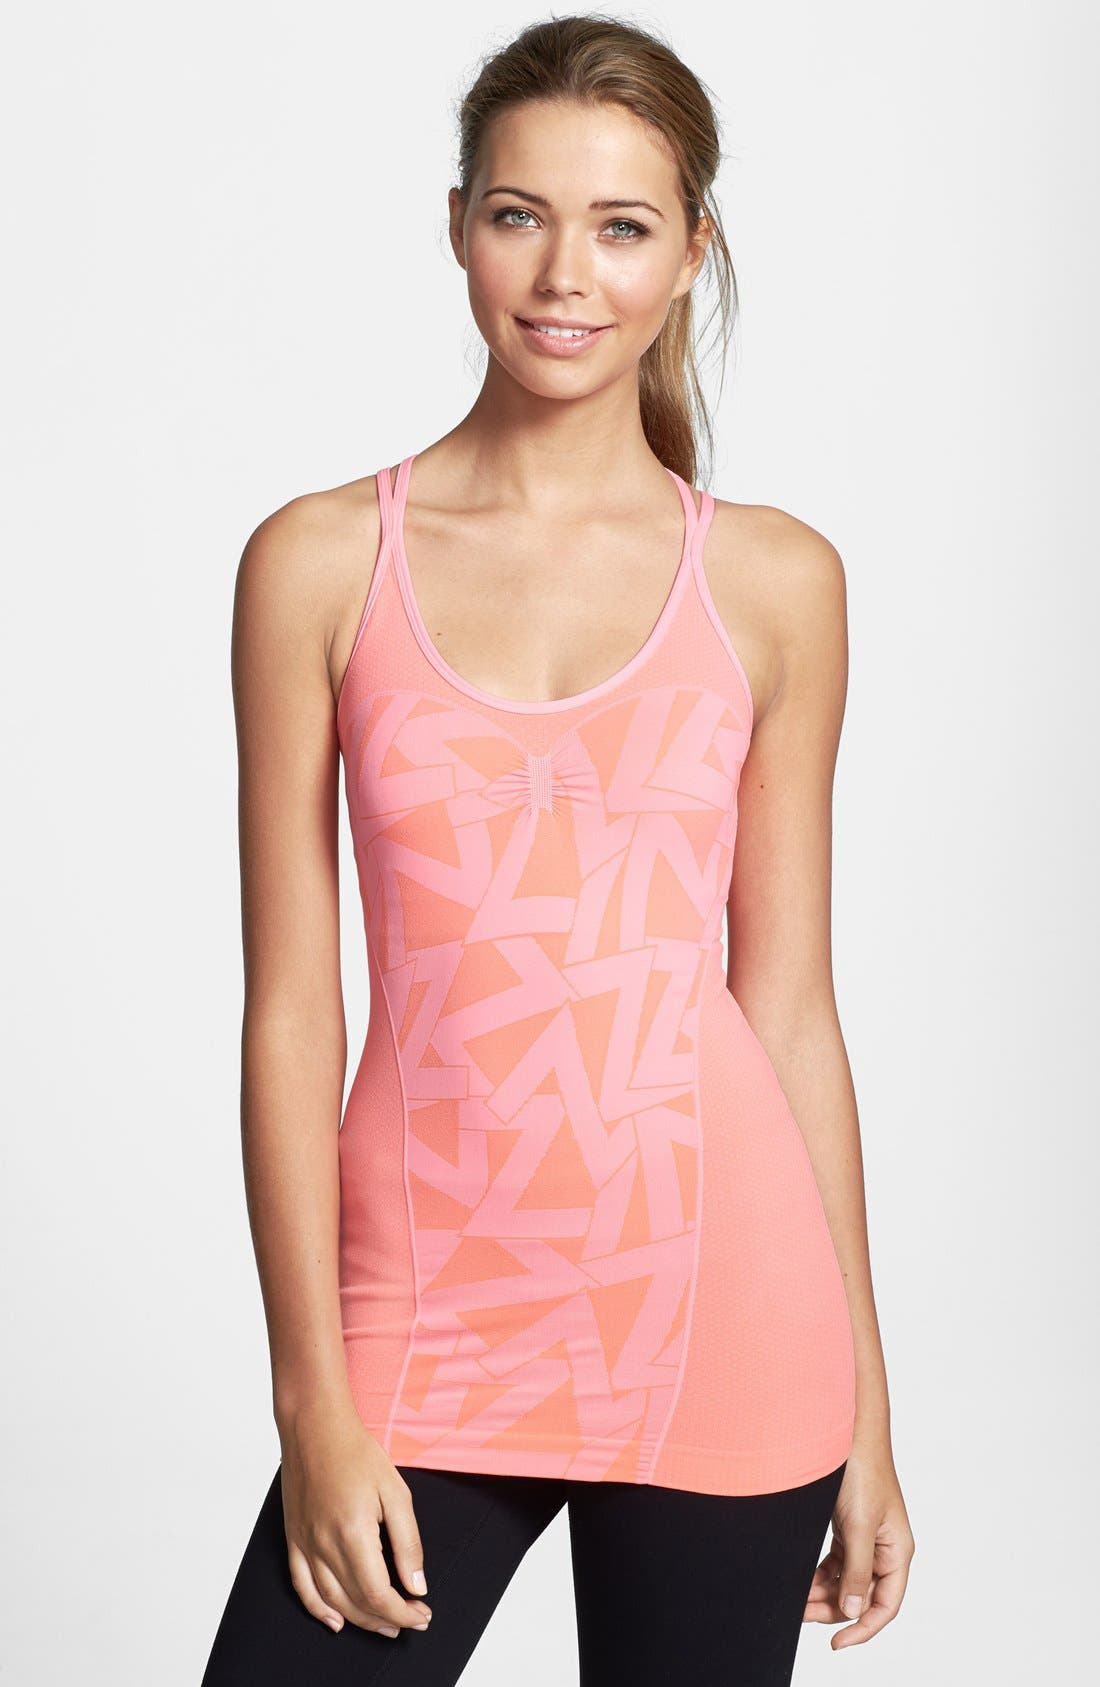 Alternate Image 1 Selected - Zella 'Devotion' Seamless Compression Tank